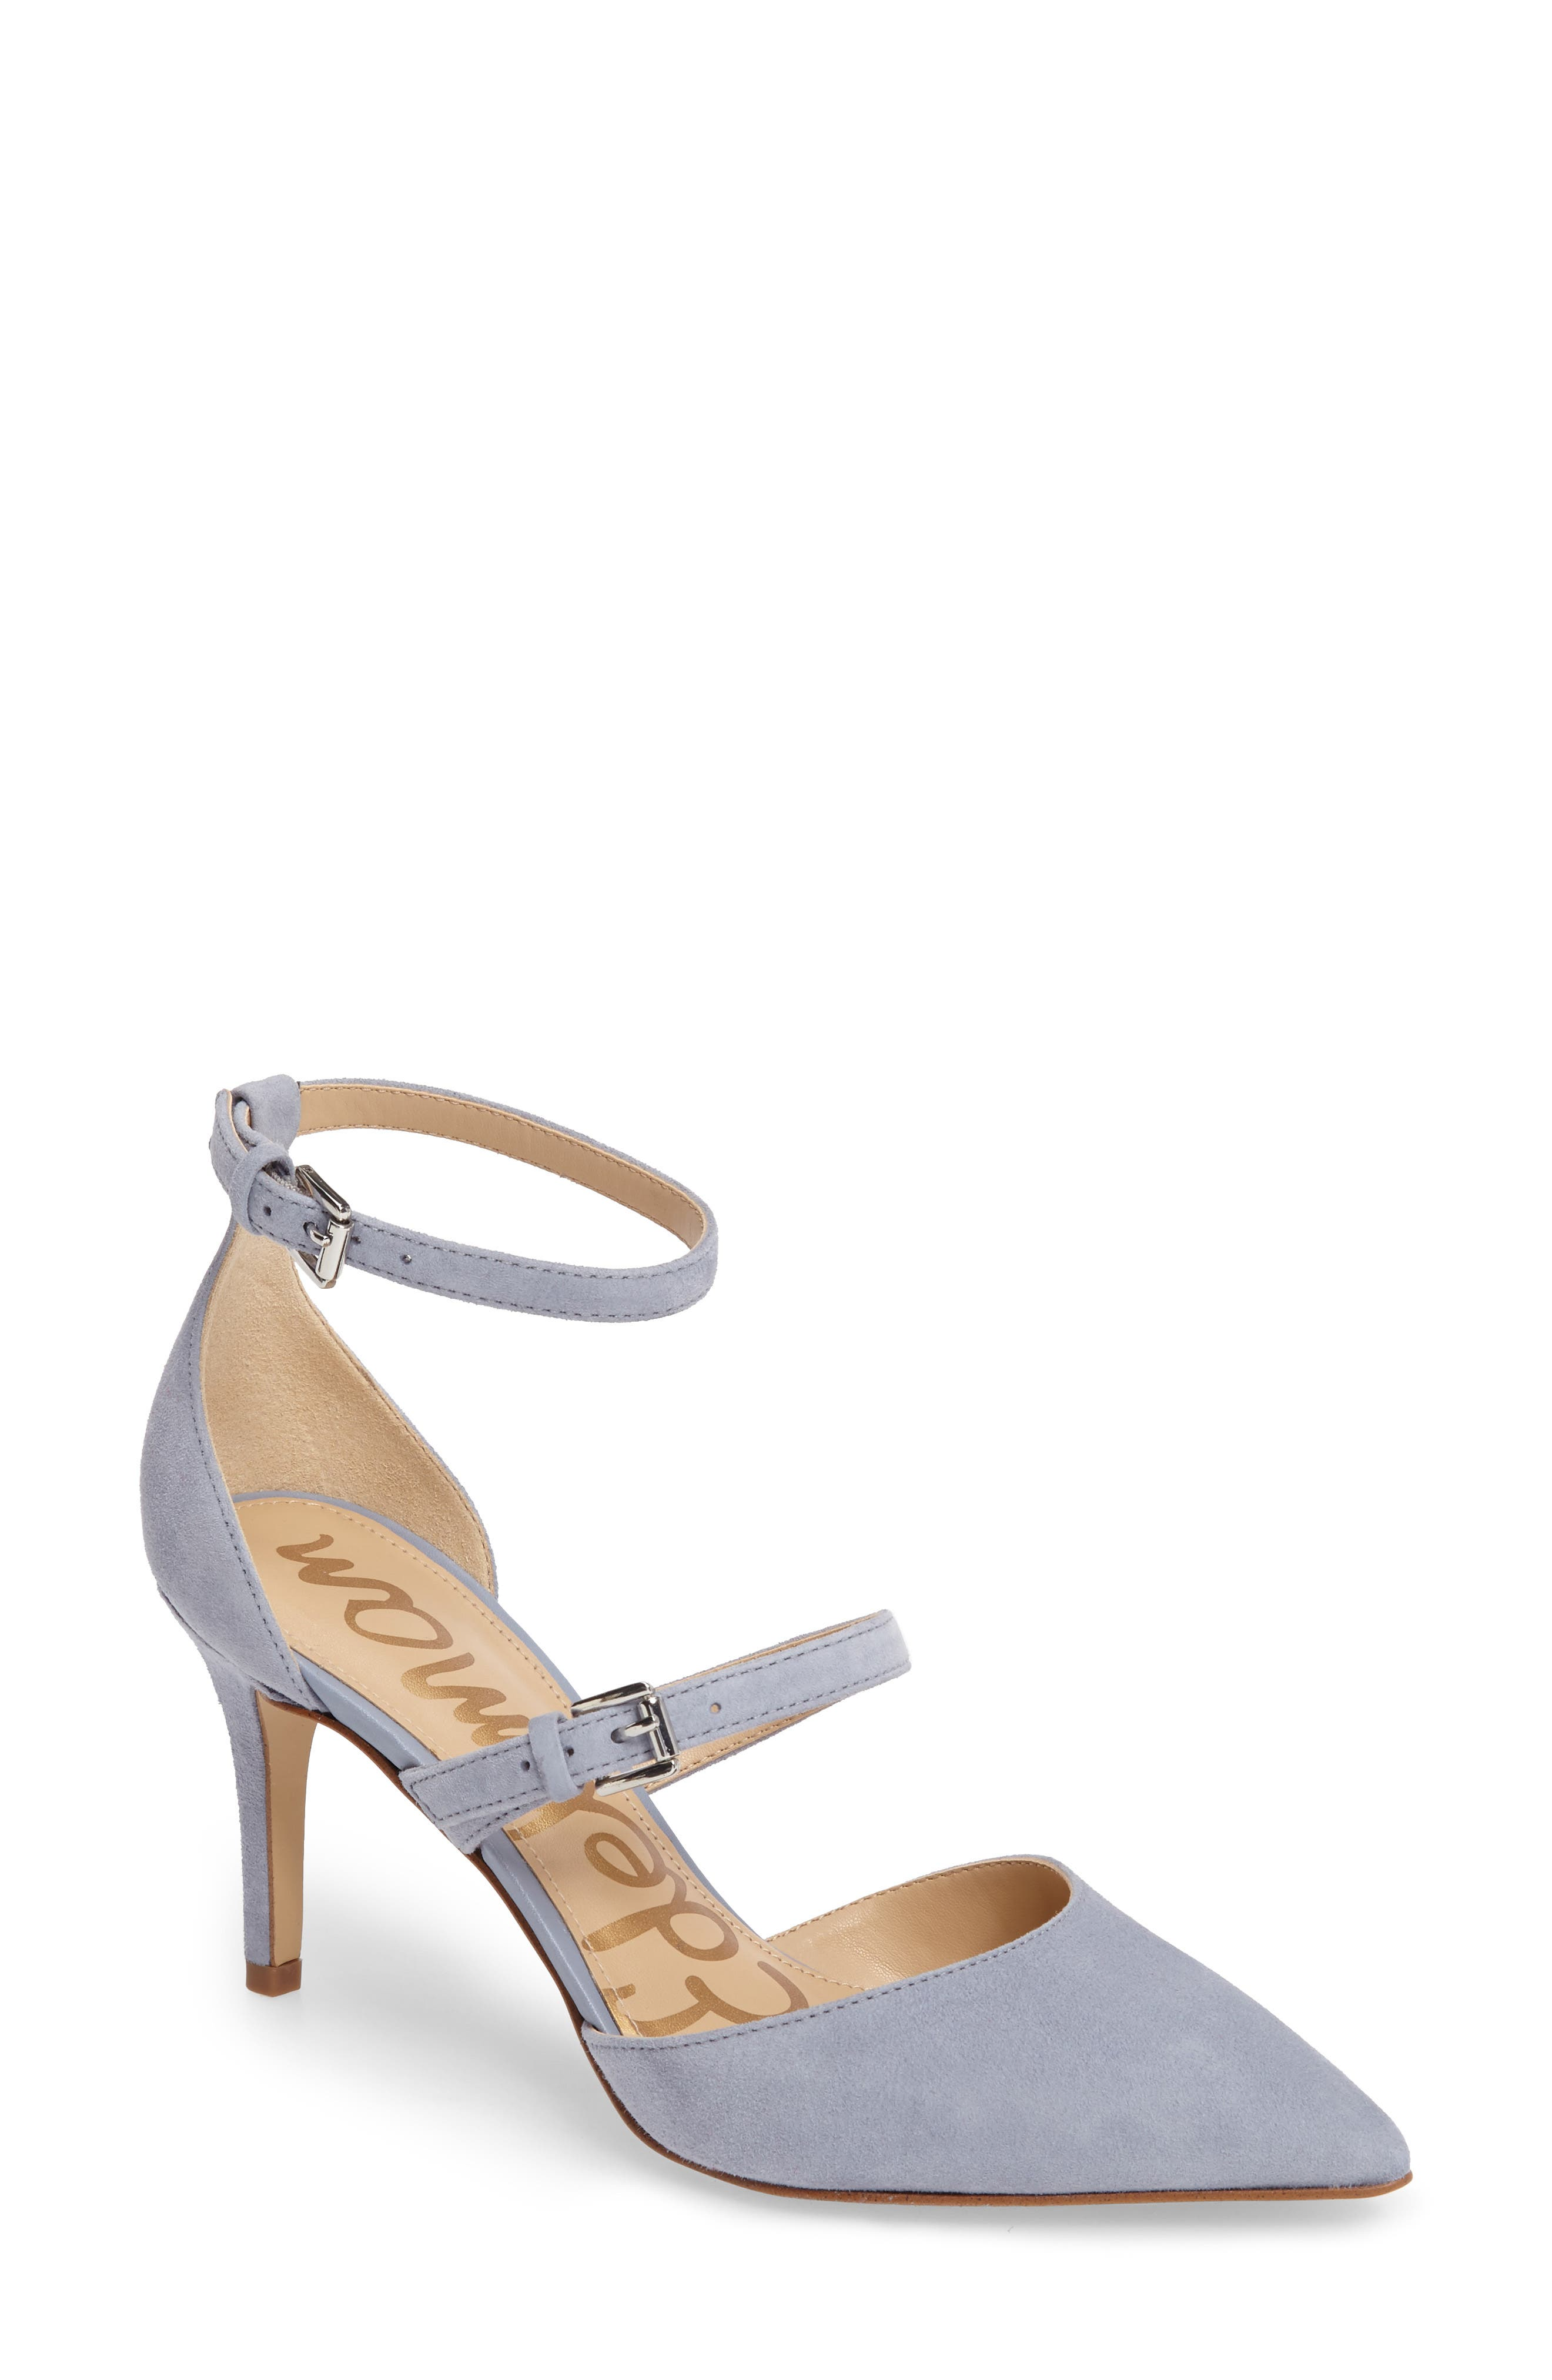 Alternate Image 1 Selected - Sam Edelman 'Thea' Strappy Pump (Women)